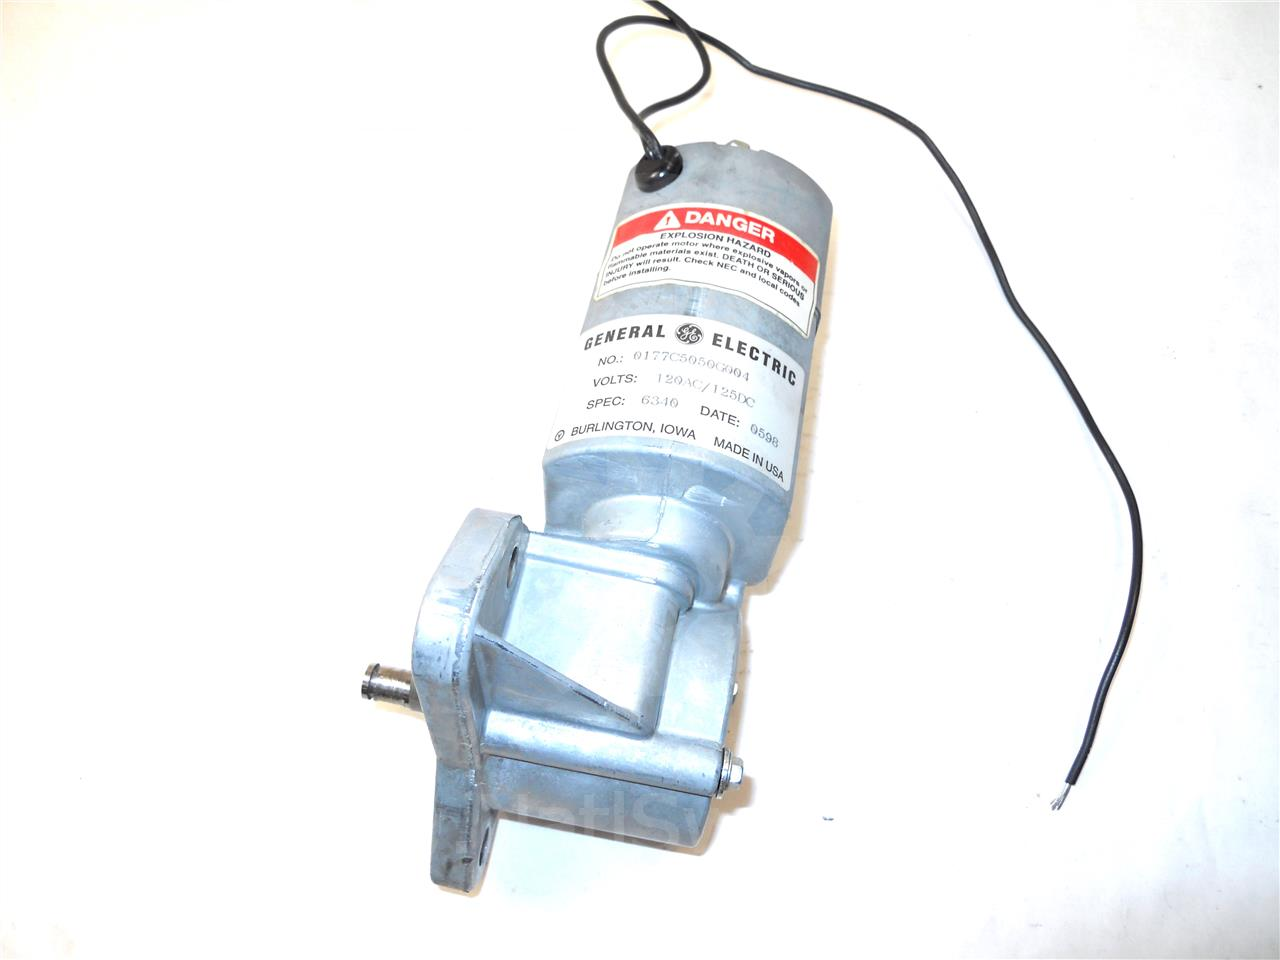 0177c5050g004 ge / general electric 120vac / 125vdc charge motor for akr /  vb1 with ml-18 / wave pro